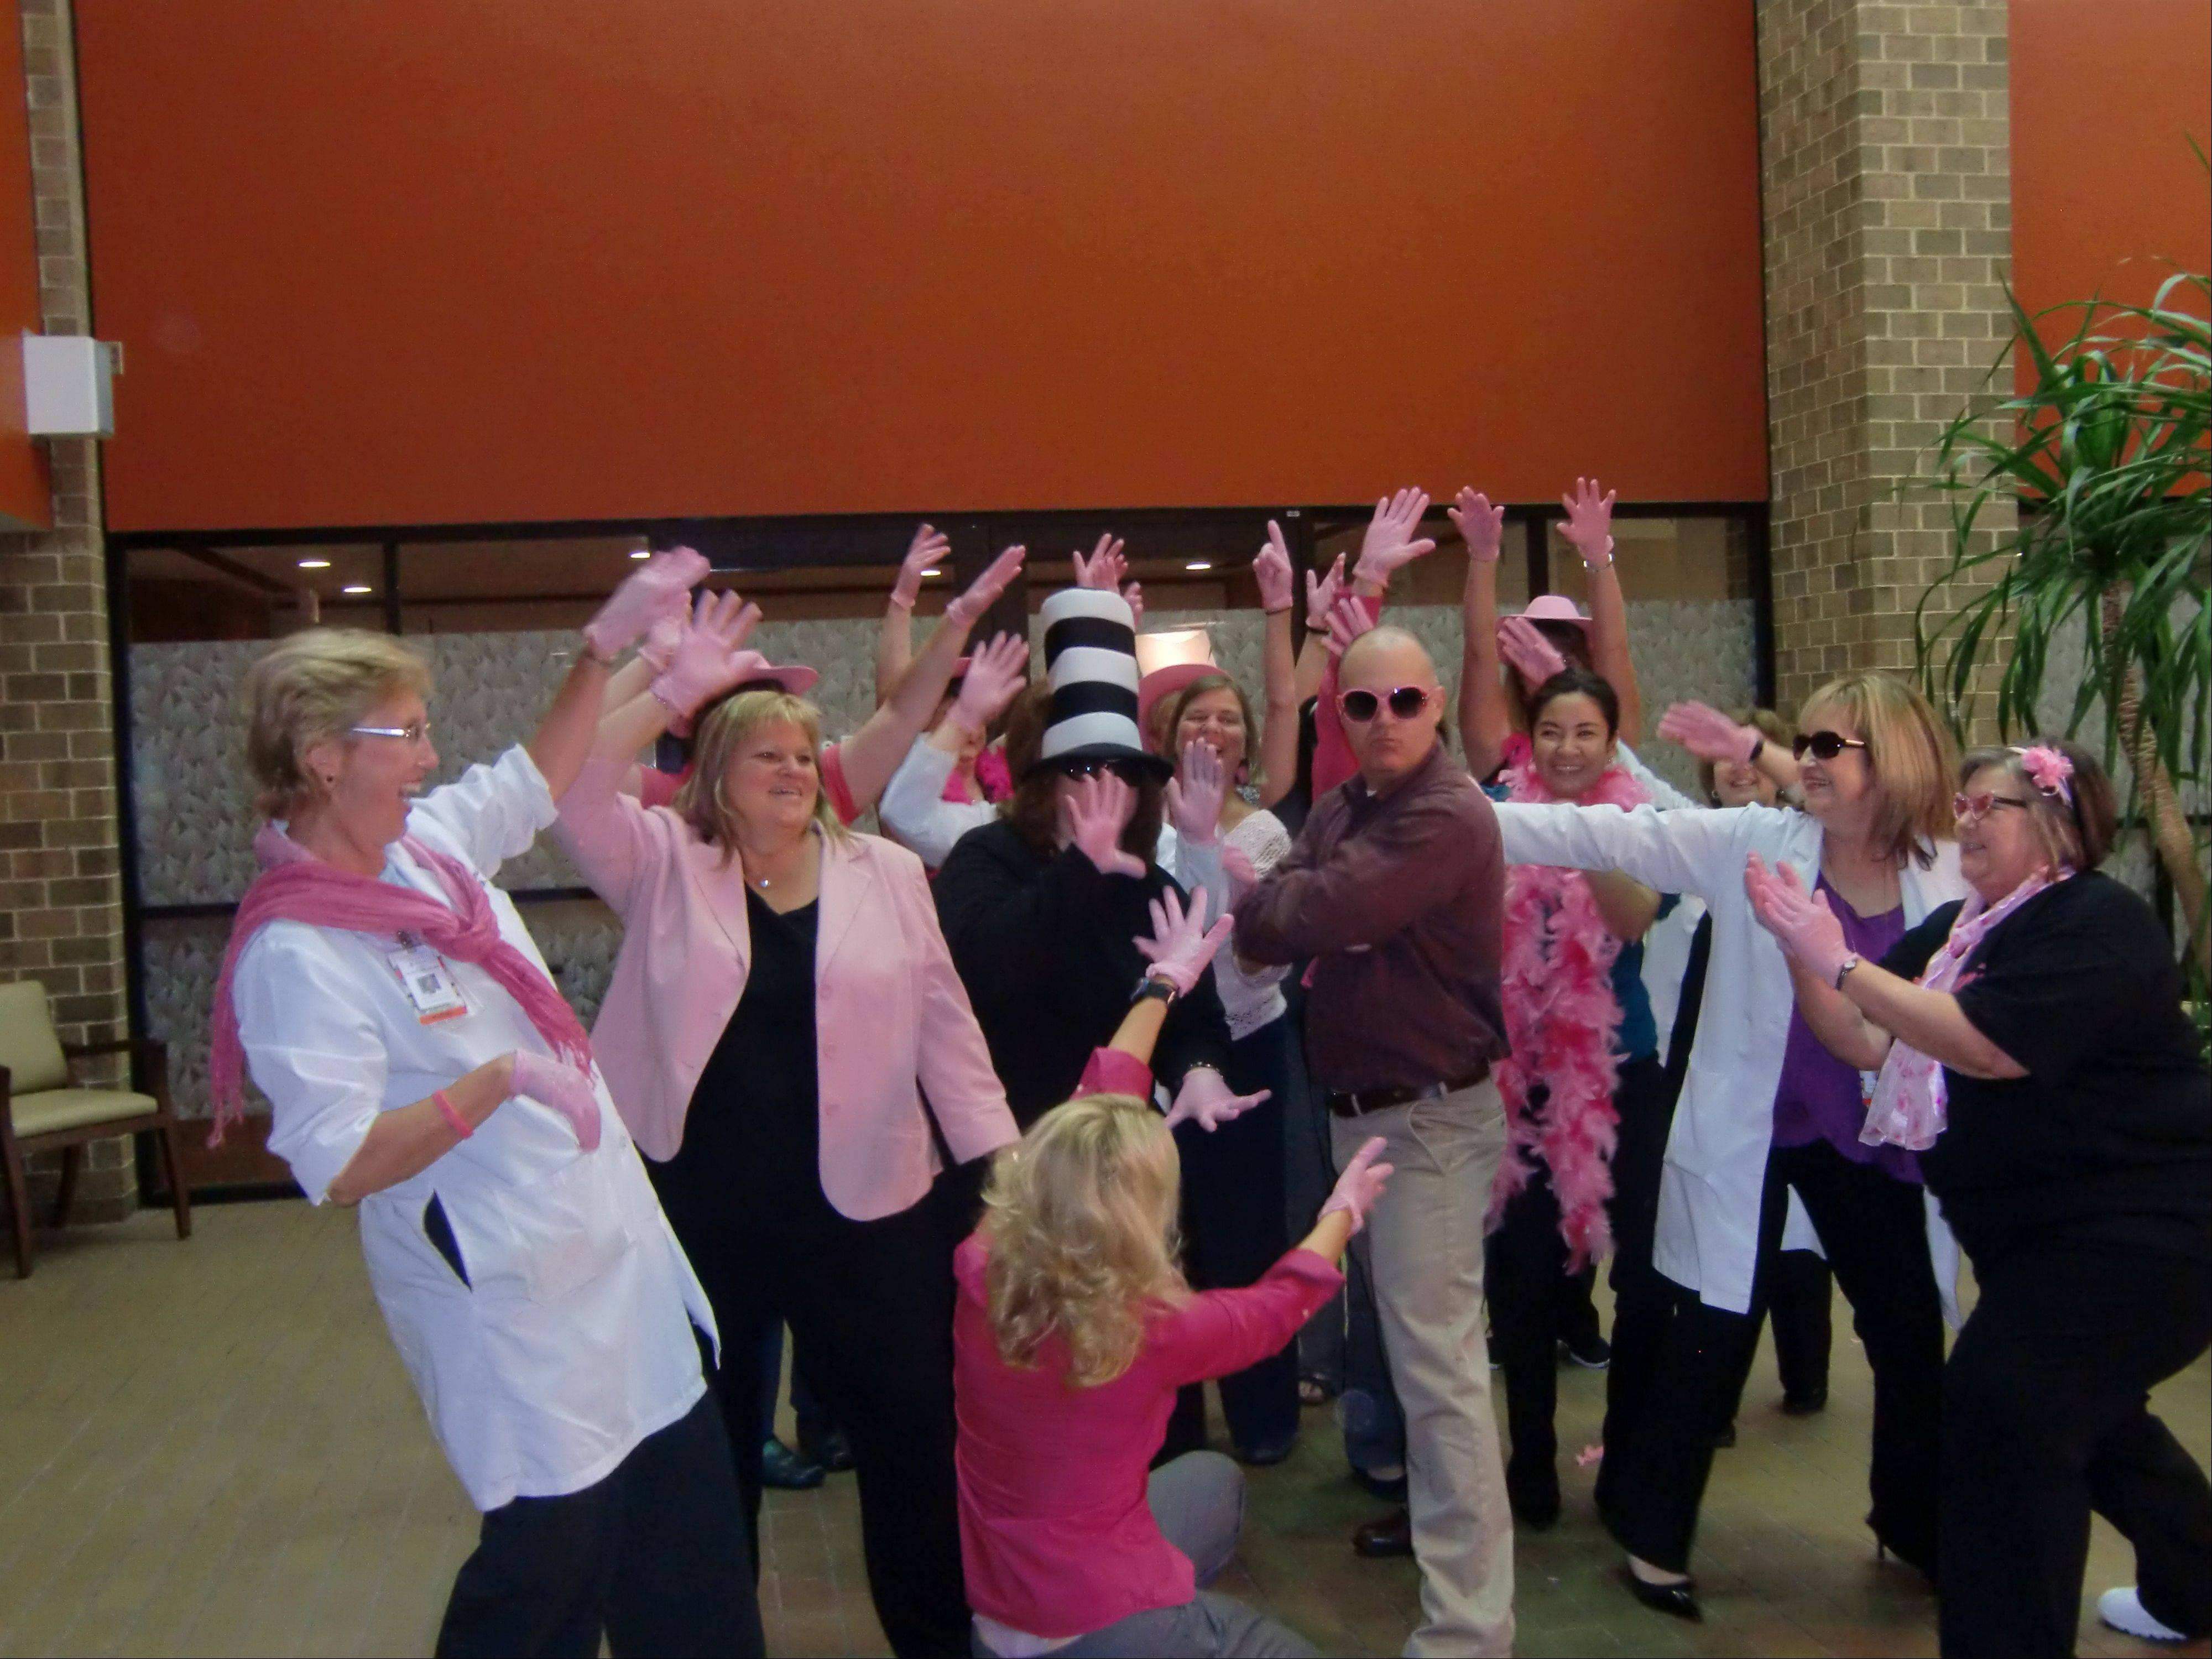 Hundreds of associates took a few minutes out of their day to participate in the Pink Glove video.